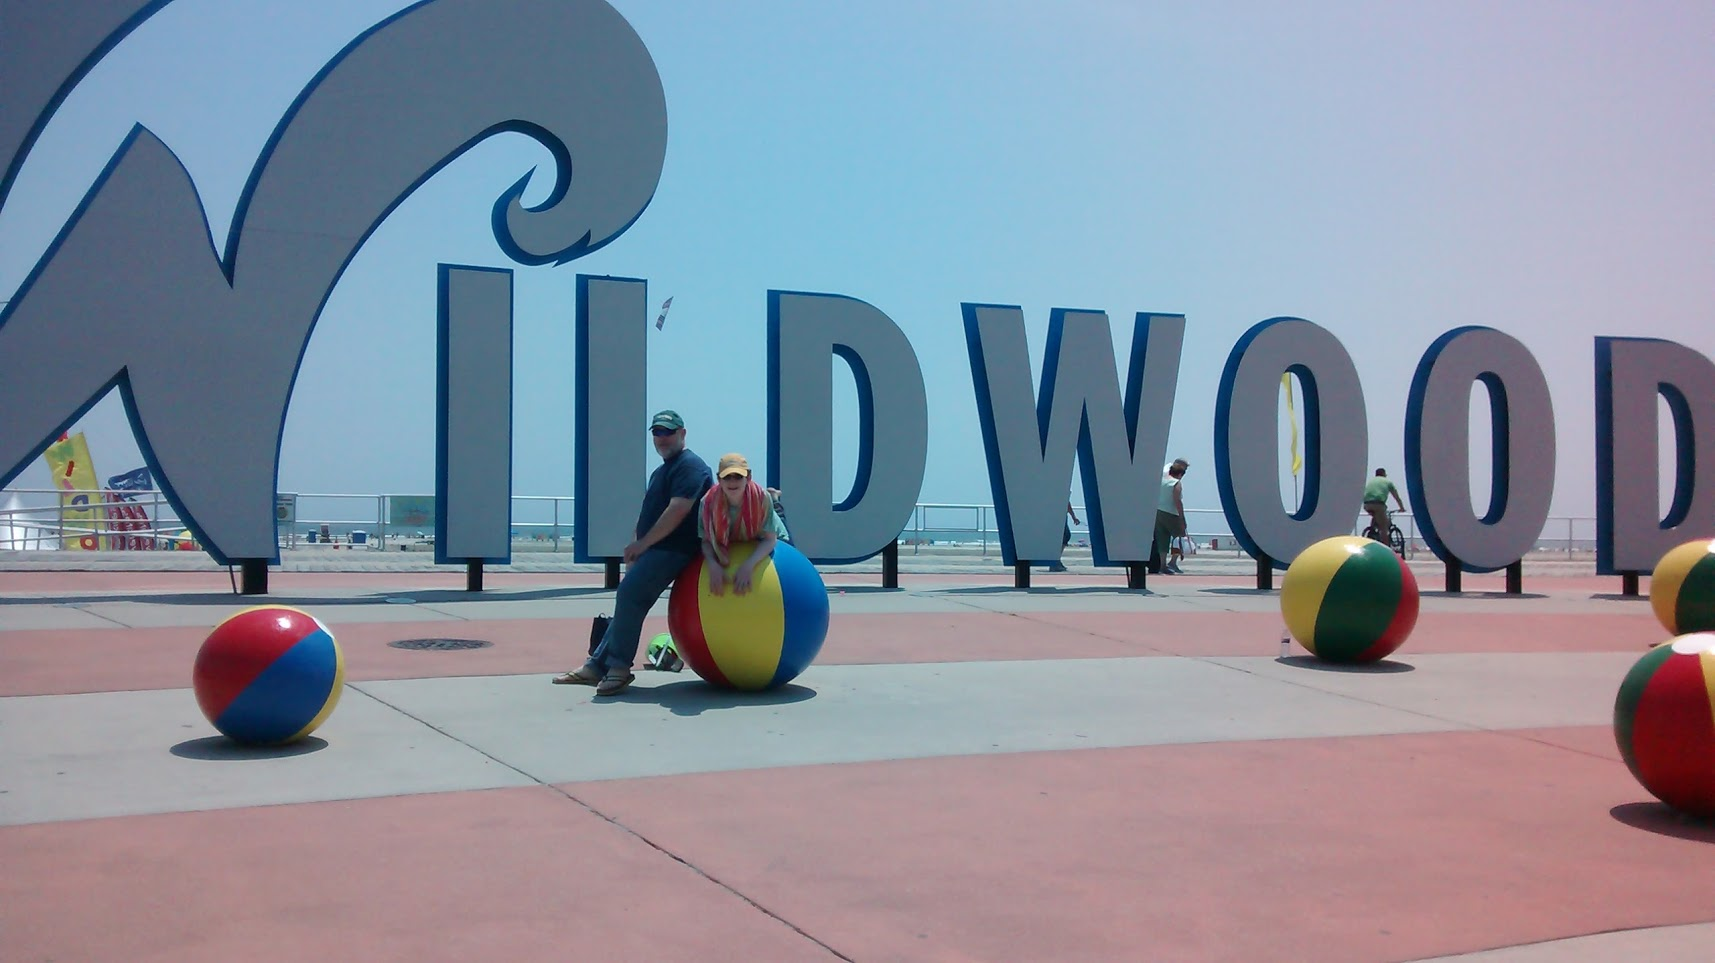 Photo of Carl and Nate in front of The Wildwoods sign